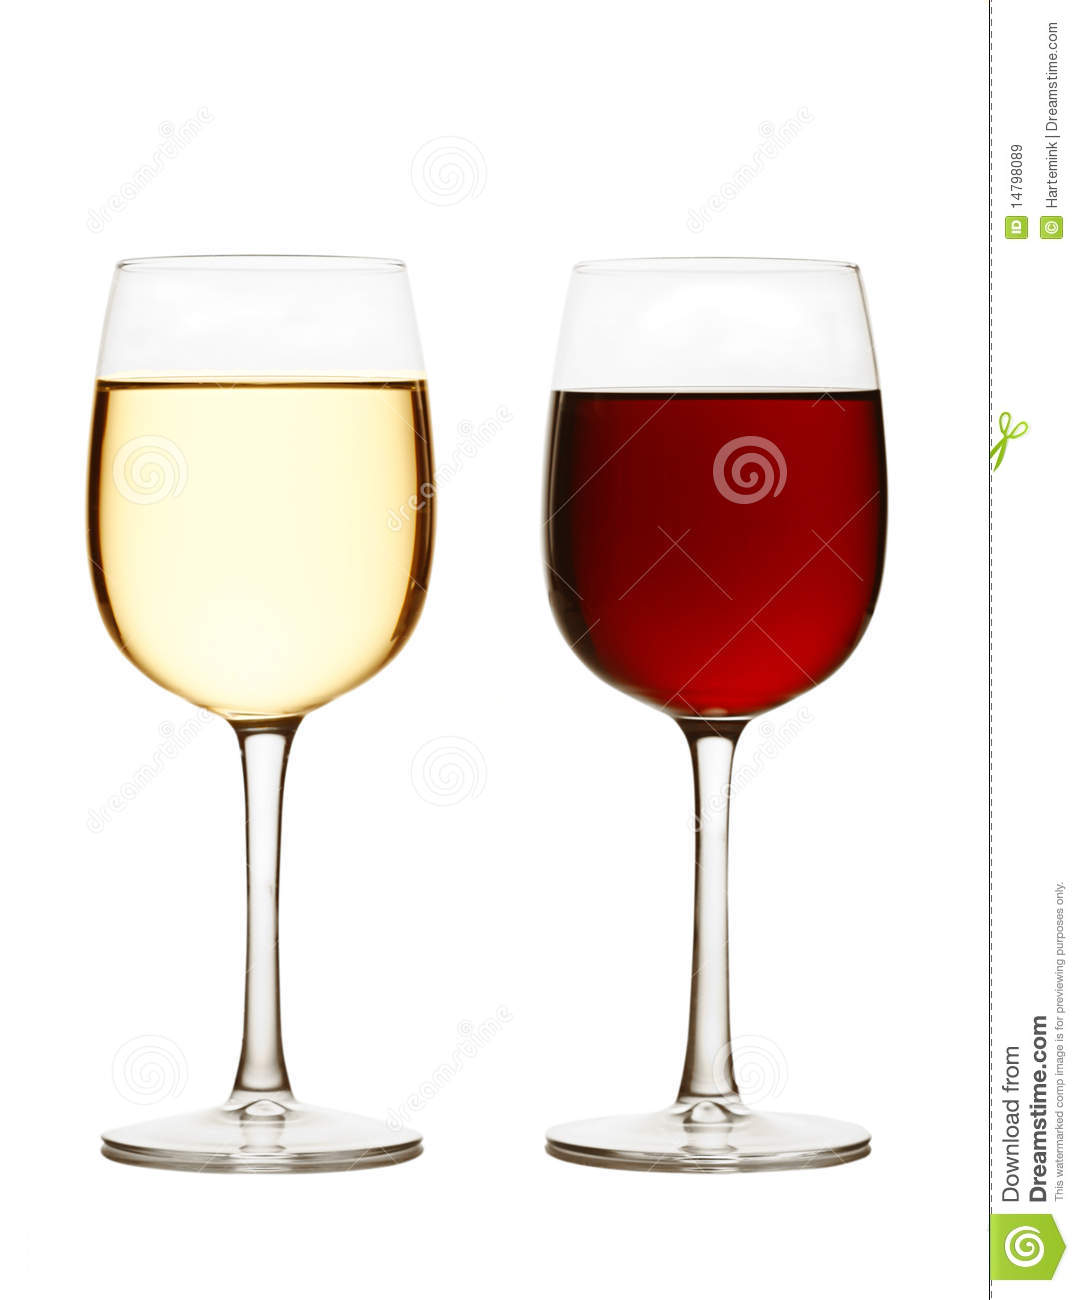 Glass Of Red Wine And White Wine Stock Image - Image of ...